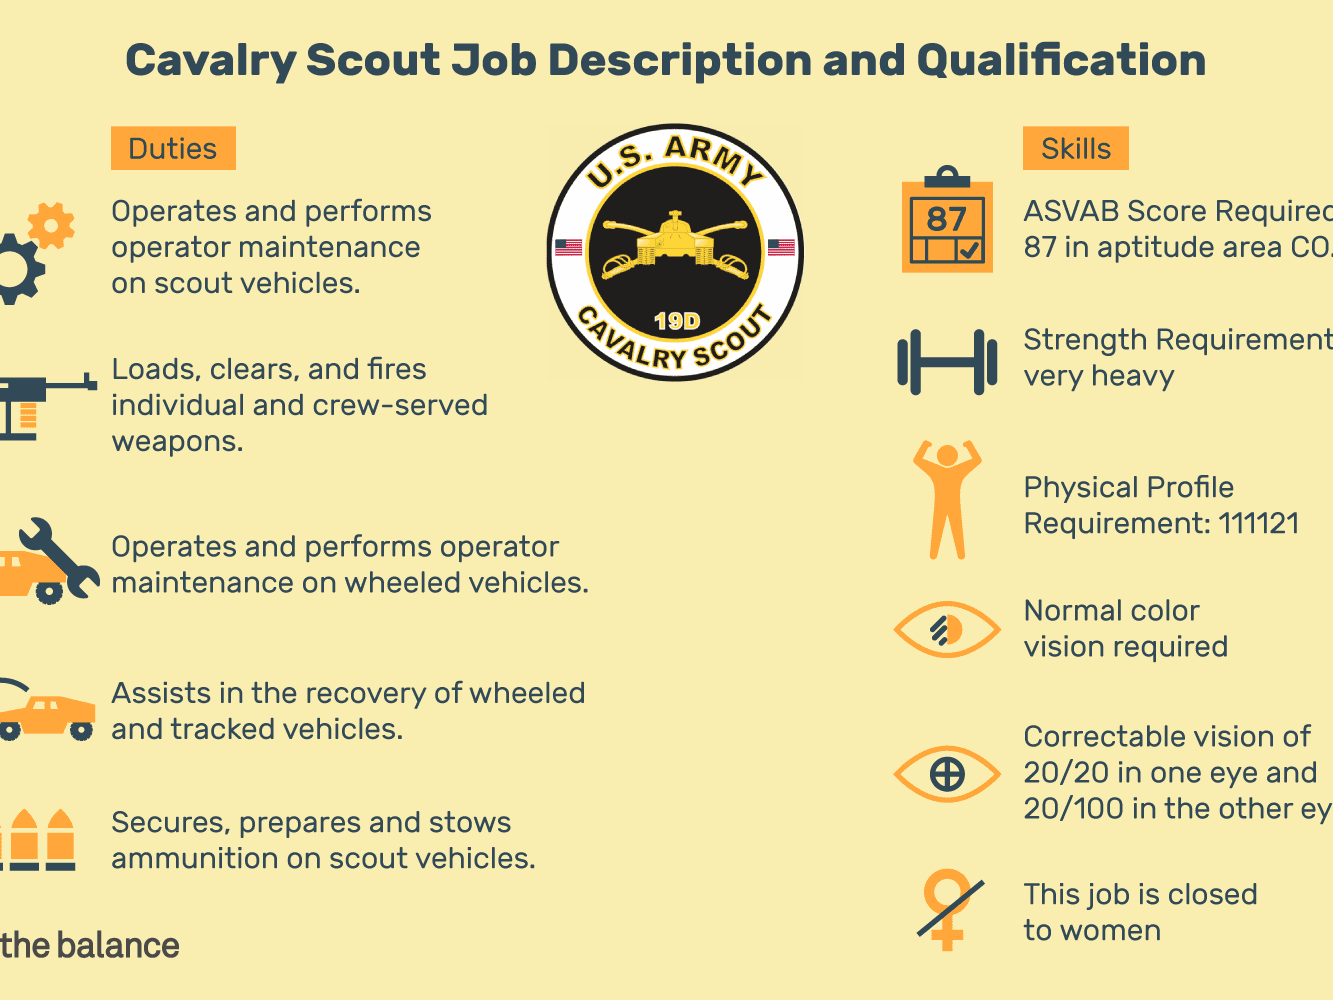 Job Description and Qualification for Becoming a Cavalry Scout